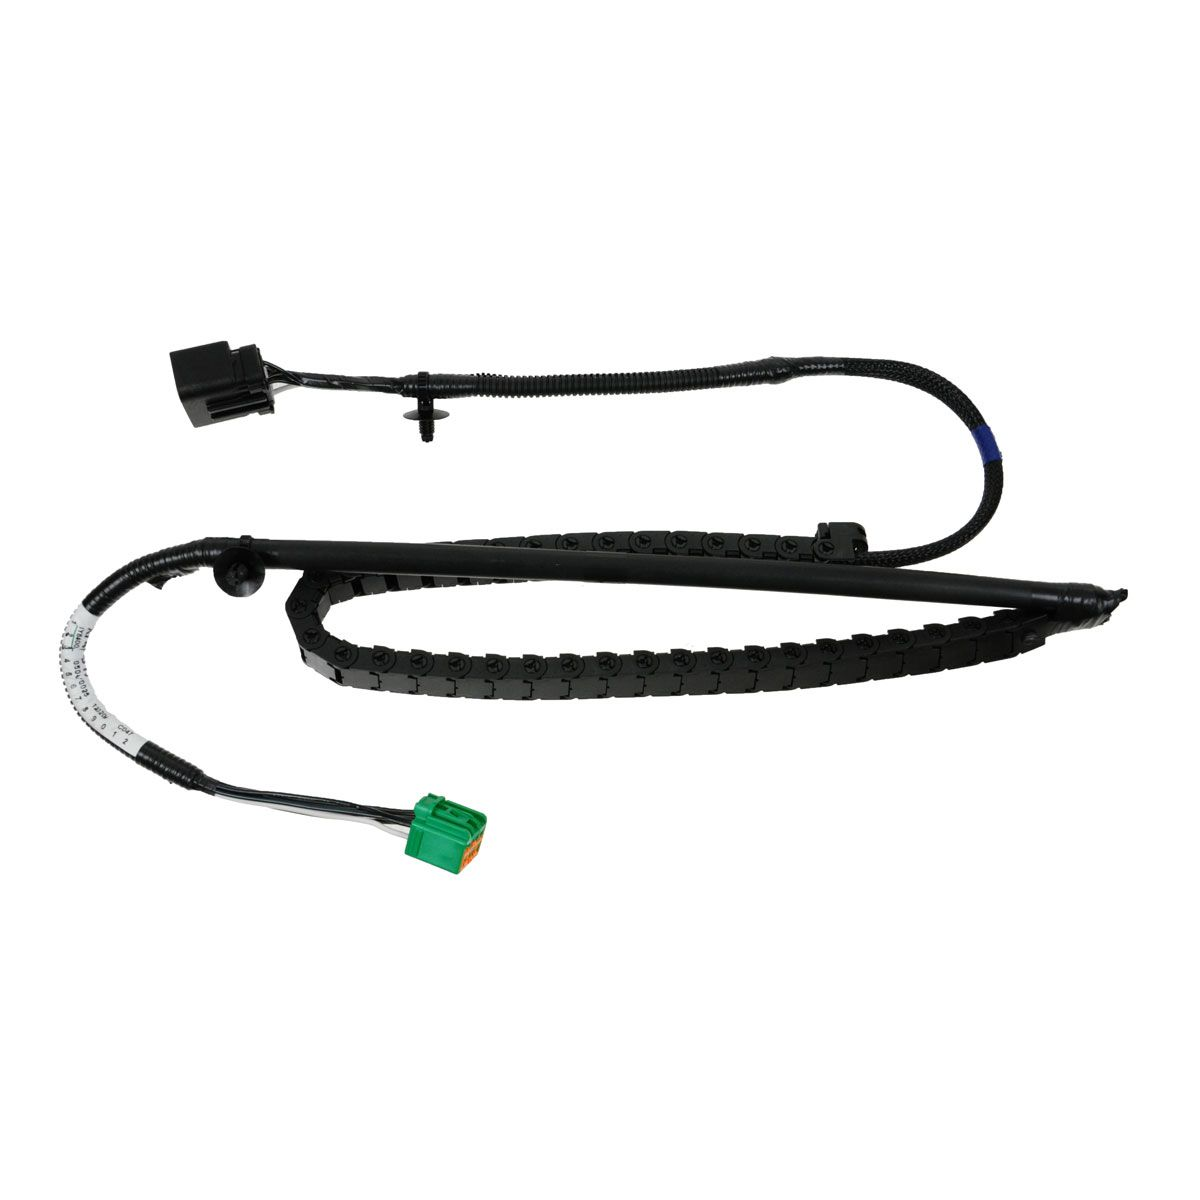 AM 1146197677 dodge caravan wiring harness best rated wiring harness for dodge  at virtualis.co